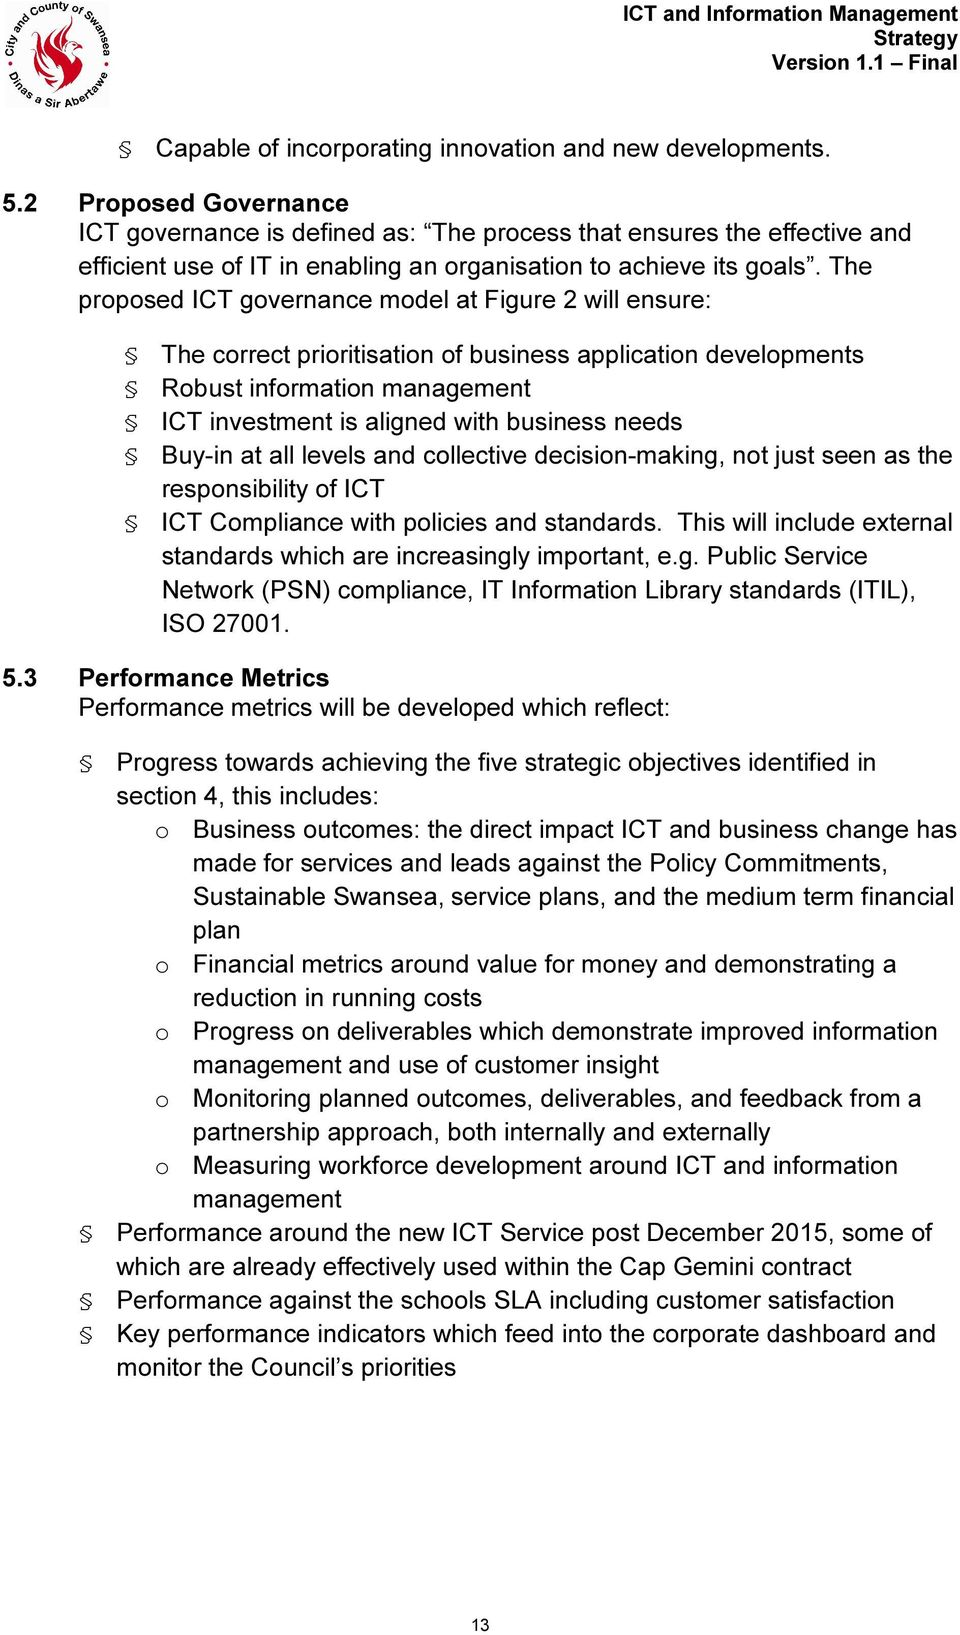 The proposed ICT governance model at Figure 2 will ensure: The correct prioritisation of business application developments Robust information management ICT investment is aligned with business needs